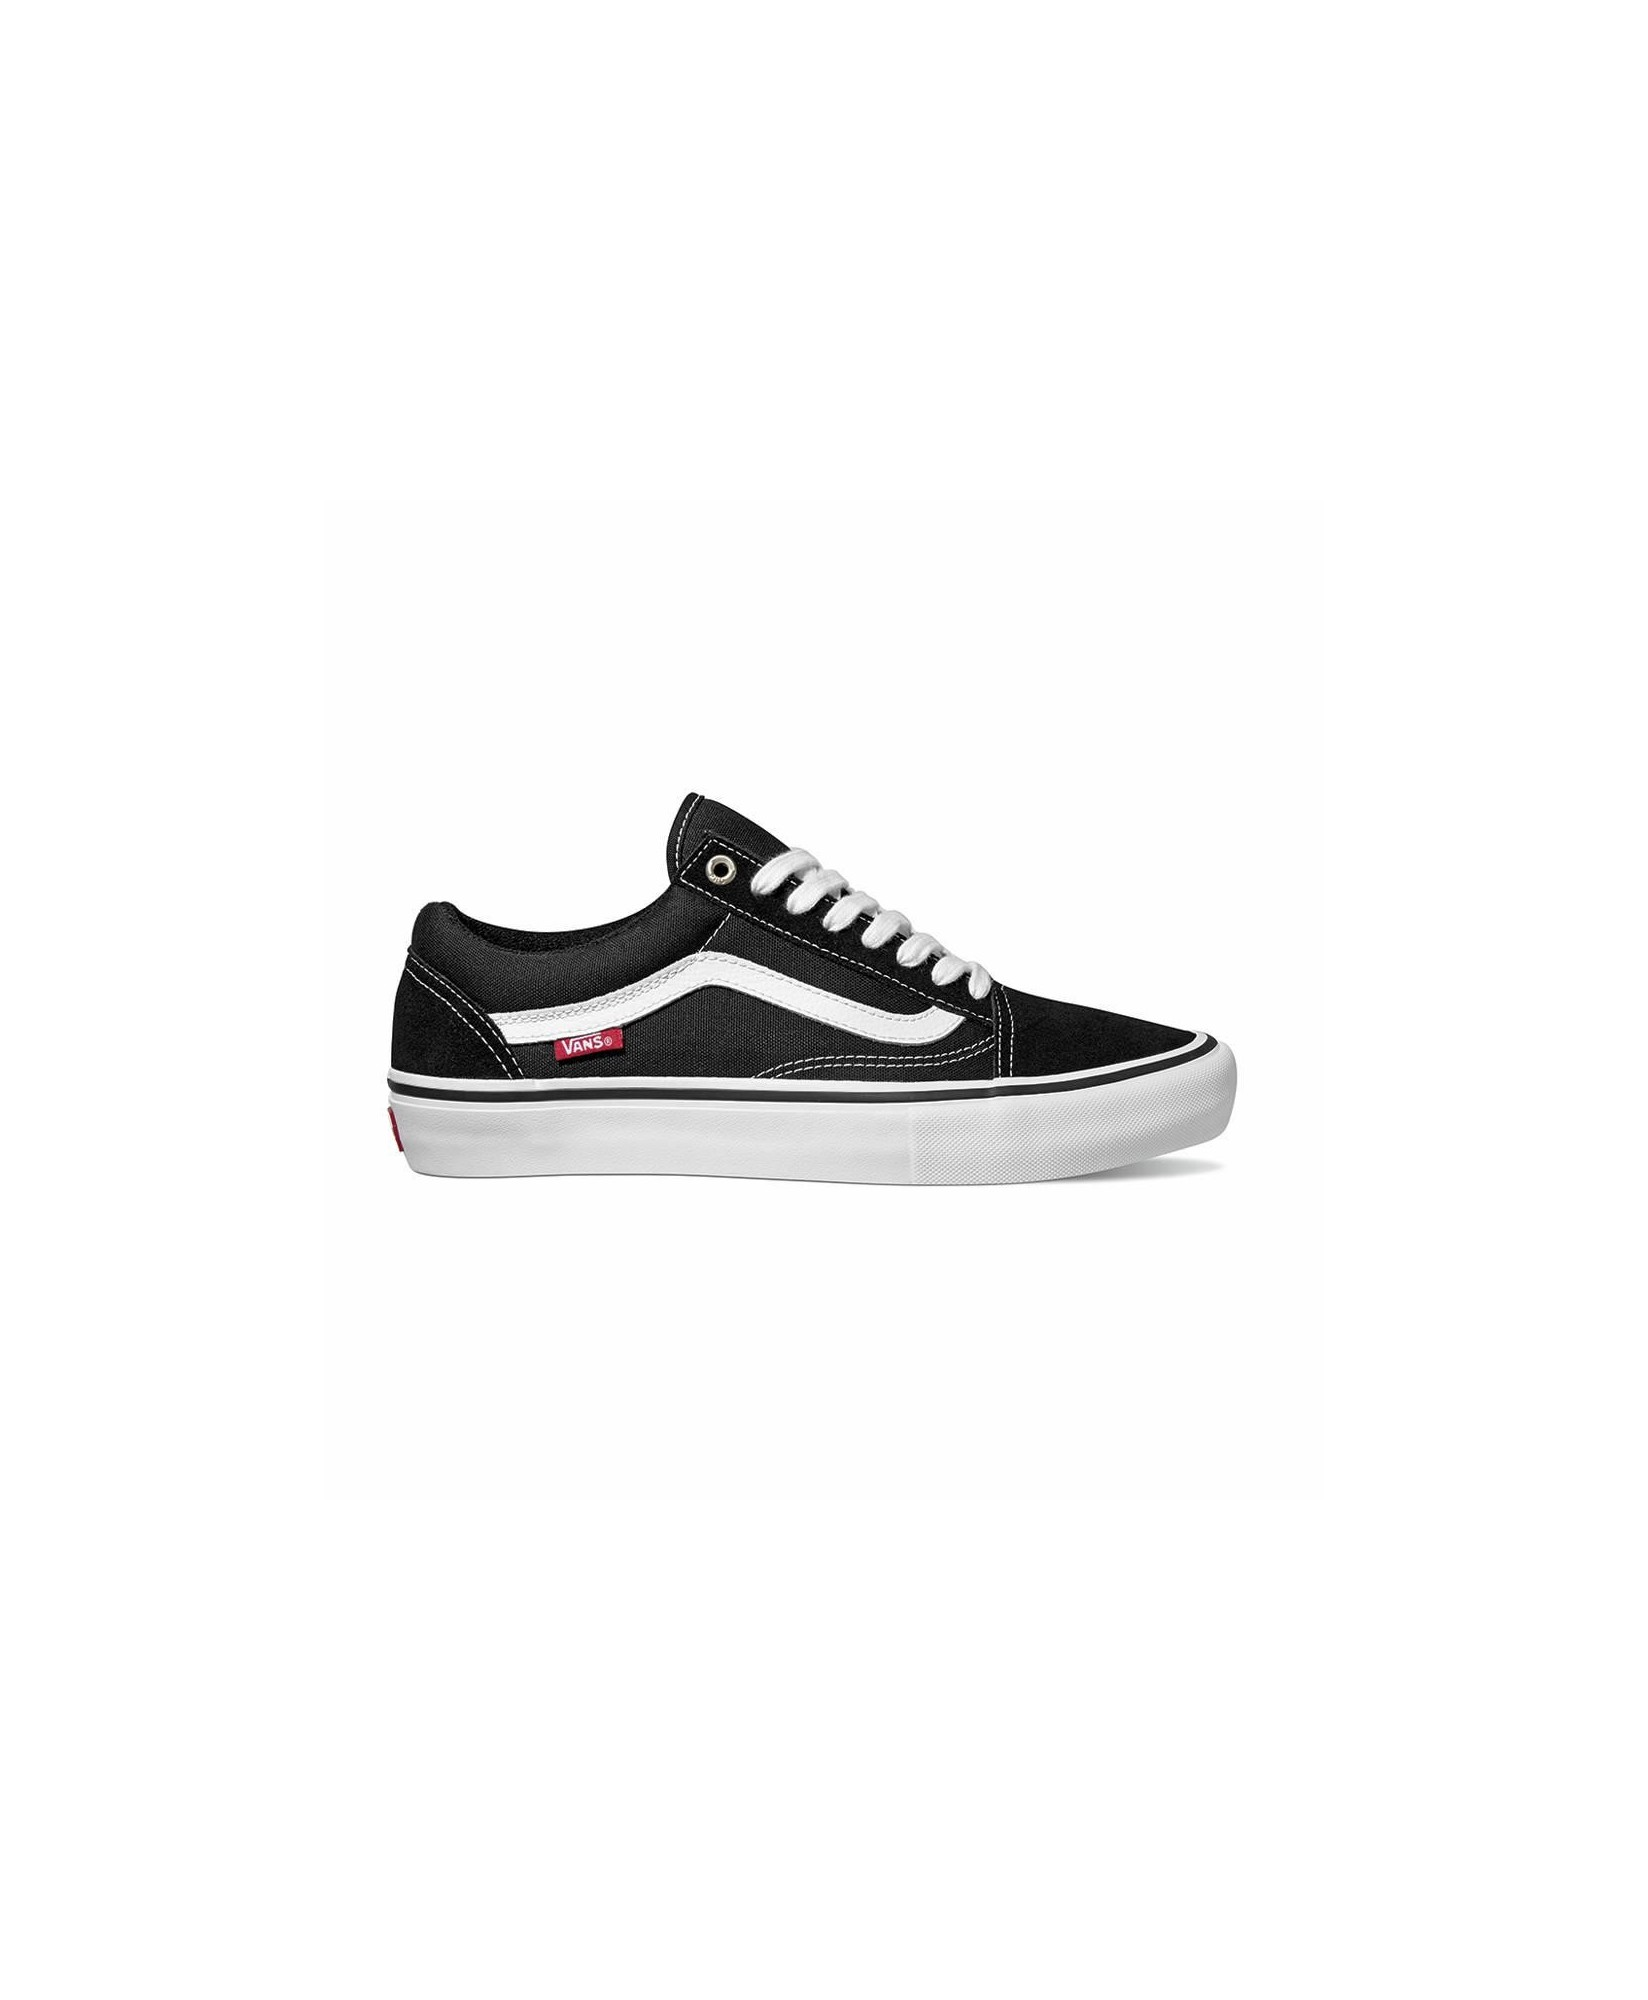 ZAPATILLAS OLD SKOOL PRO ZAPATILLAS OLD SKOOL PRO